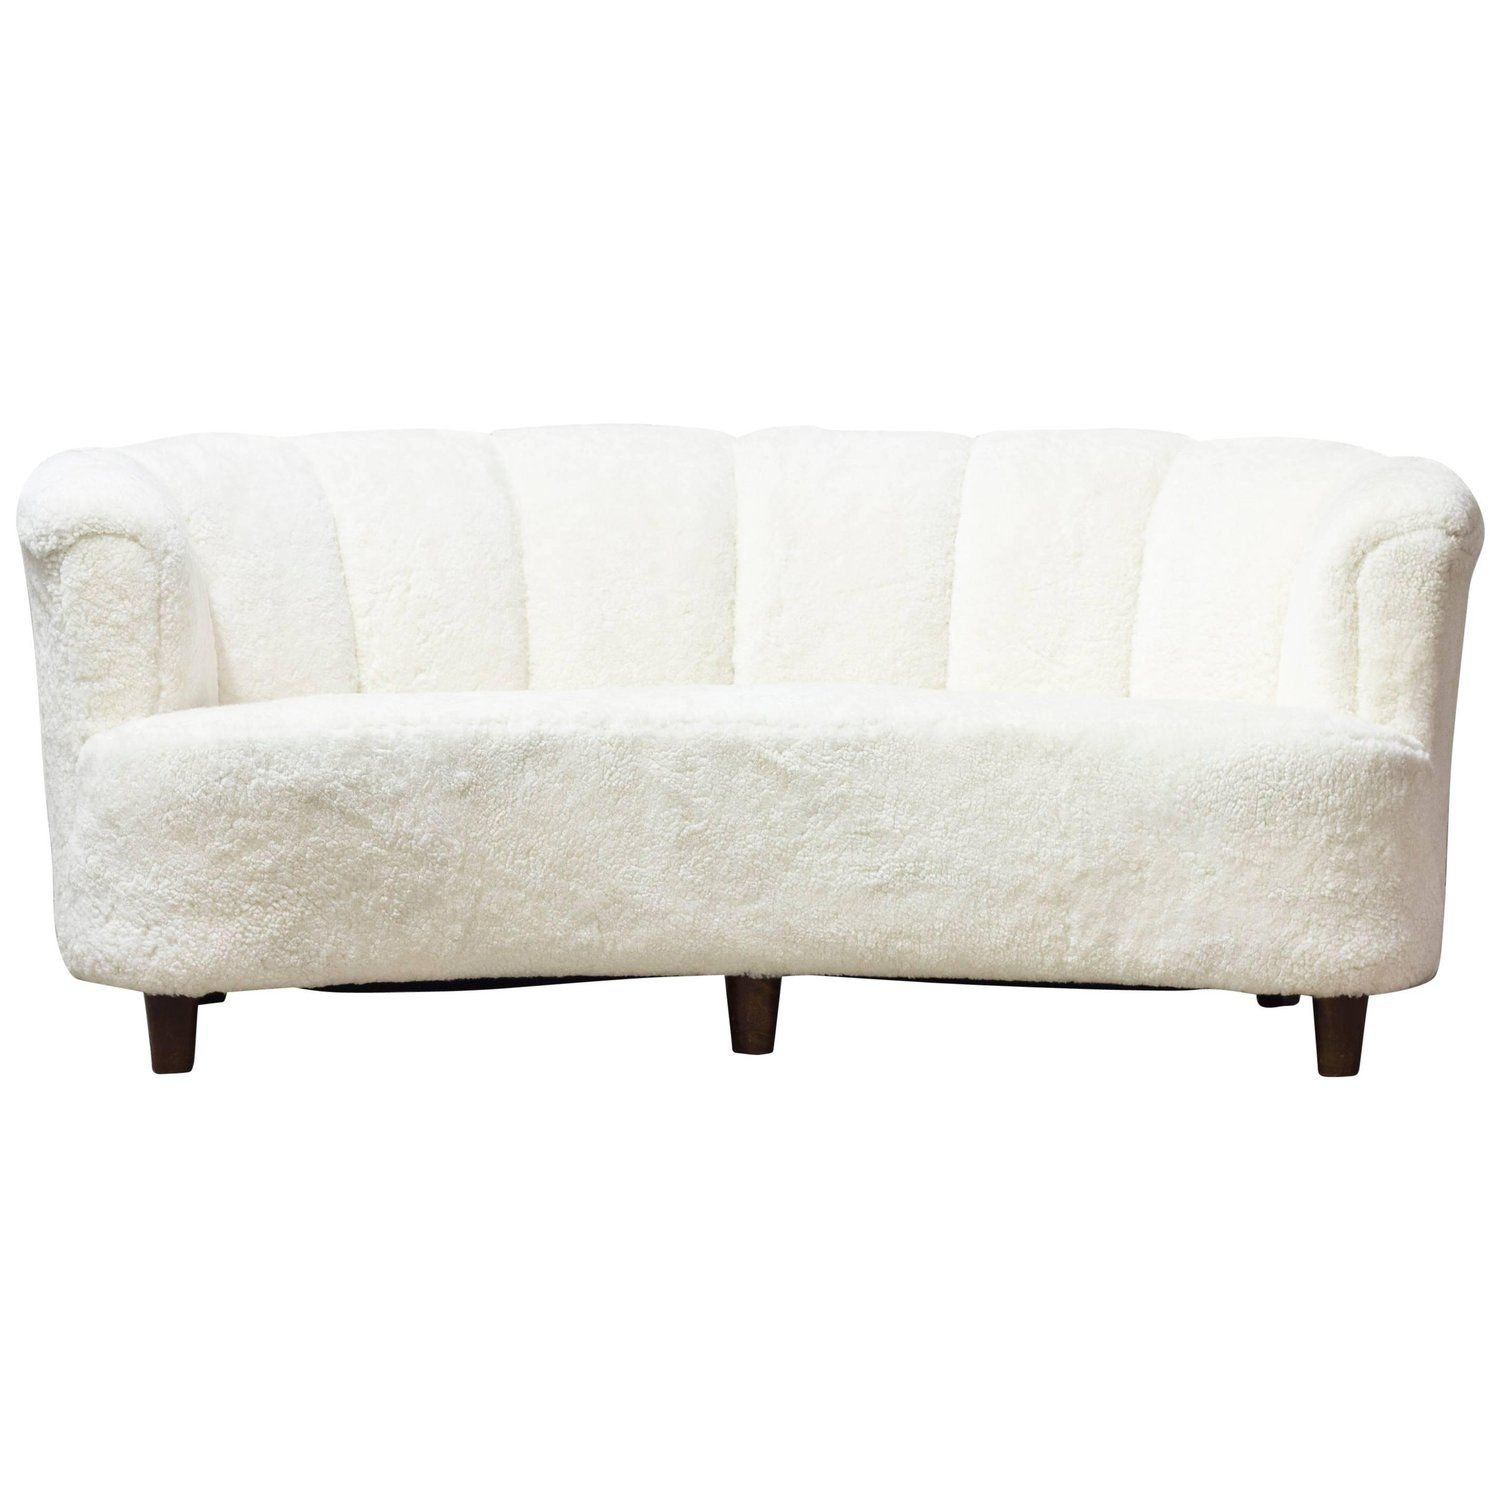 Otto Sale Sofa 1930s Sheepskin Sofa Otto Schulz For Boet My 1stdibs Favorites